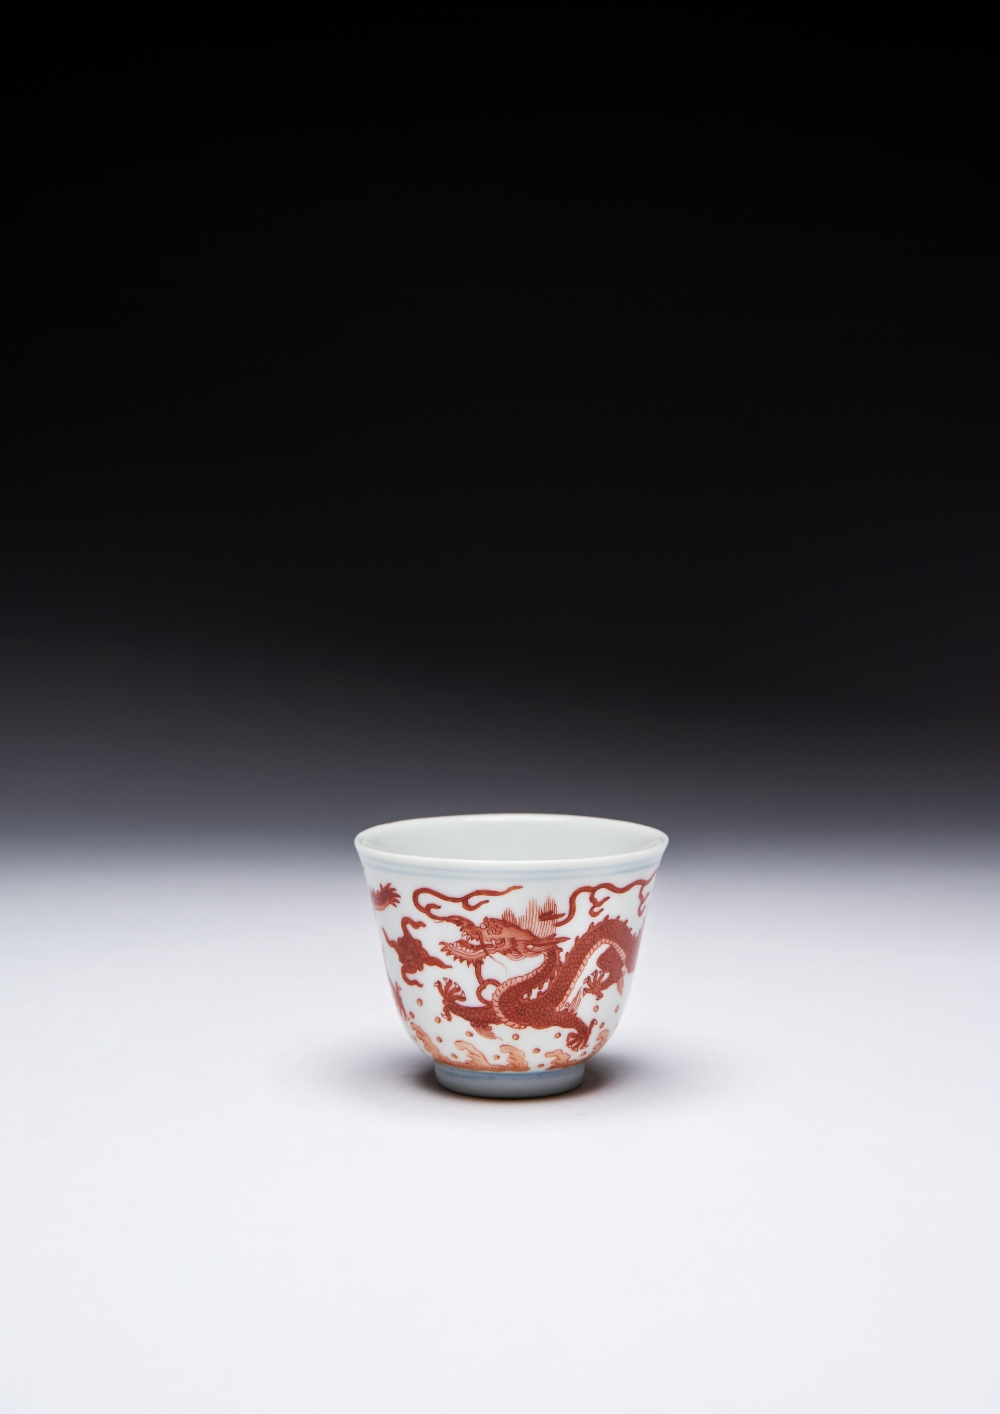 A CHINESE IMPERIAL IRON-RED 'DRAGON' WINE CUP SIX CHARACTER DAOGUANG MARK AND OF THE PERIOD 1821-